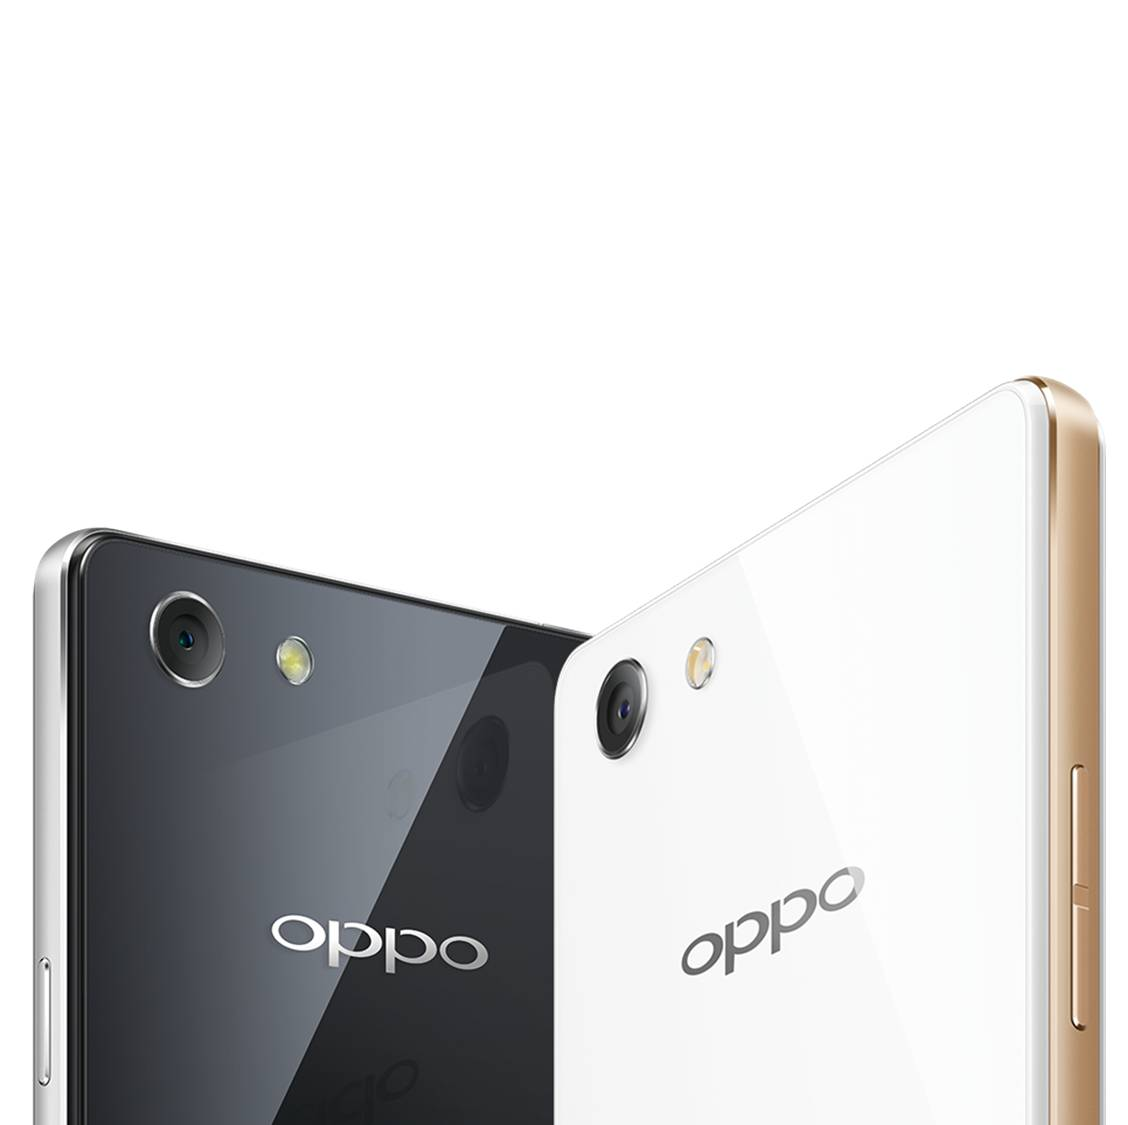 Oppo neo 7 full specifications mobiledevices oppo neo 7 reheart Gallery